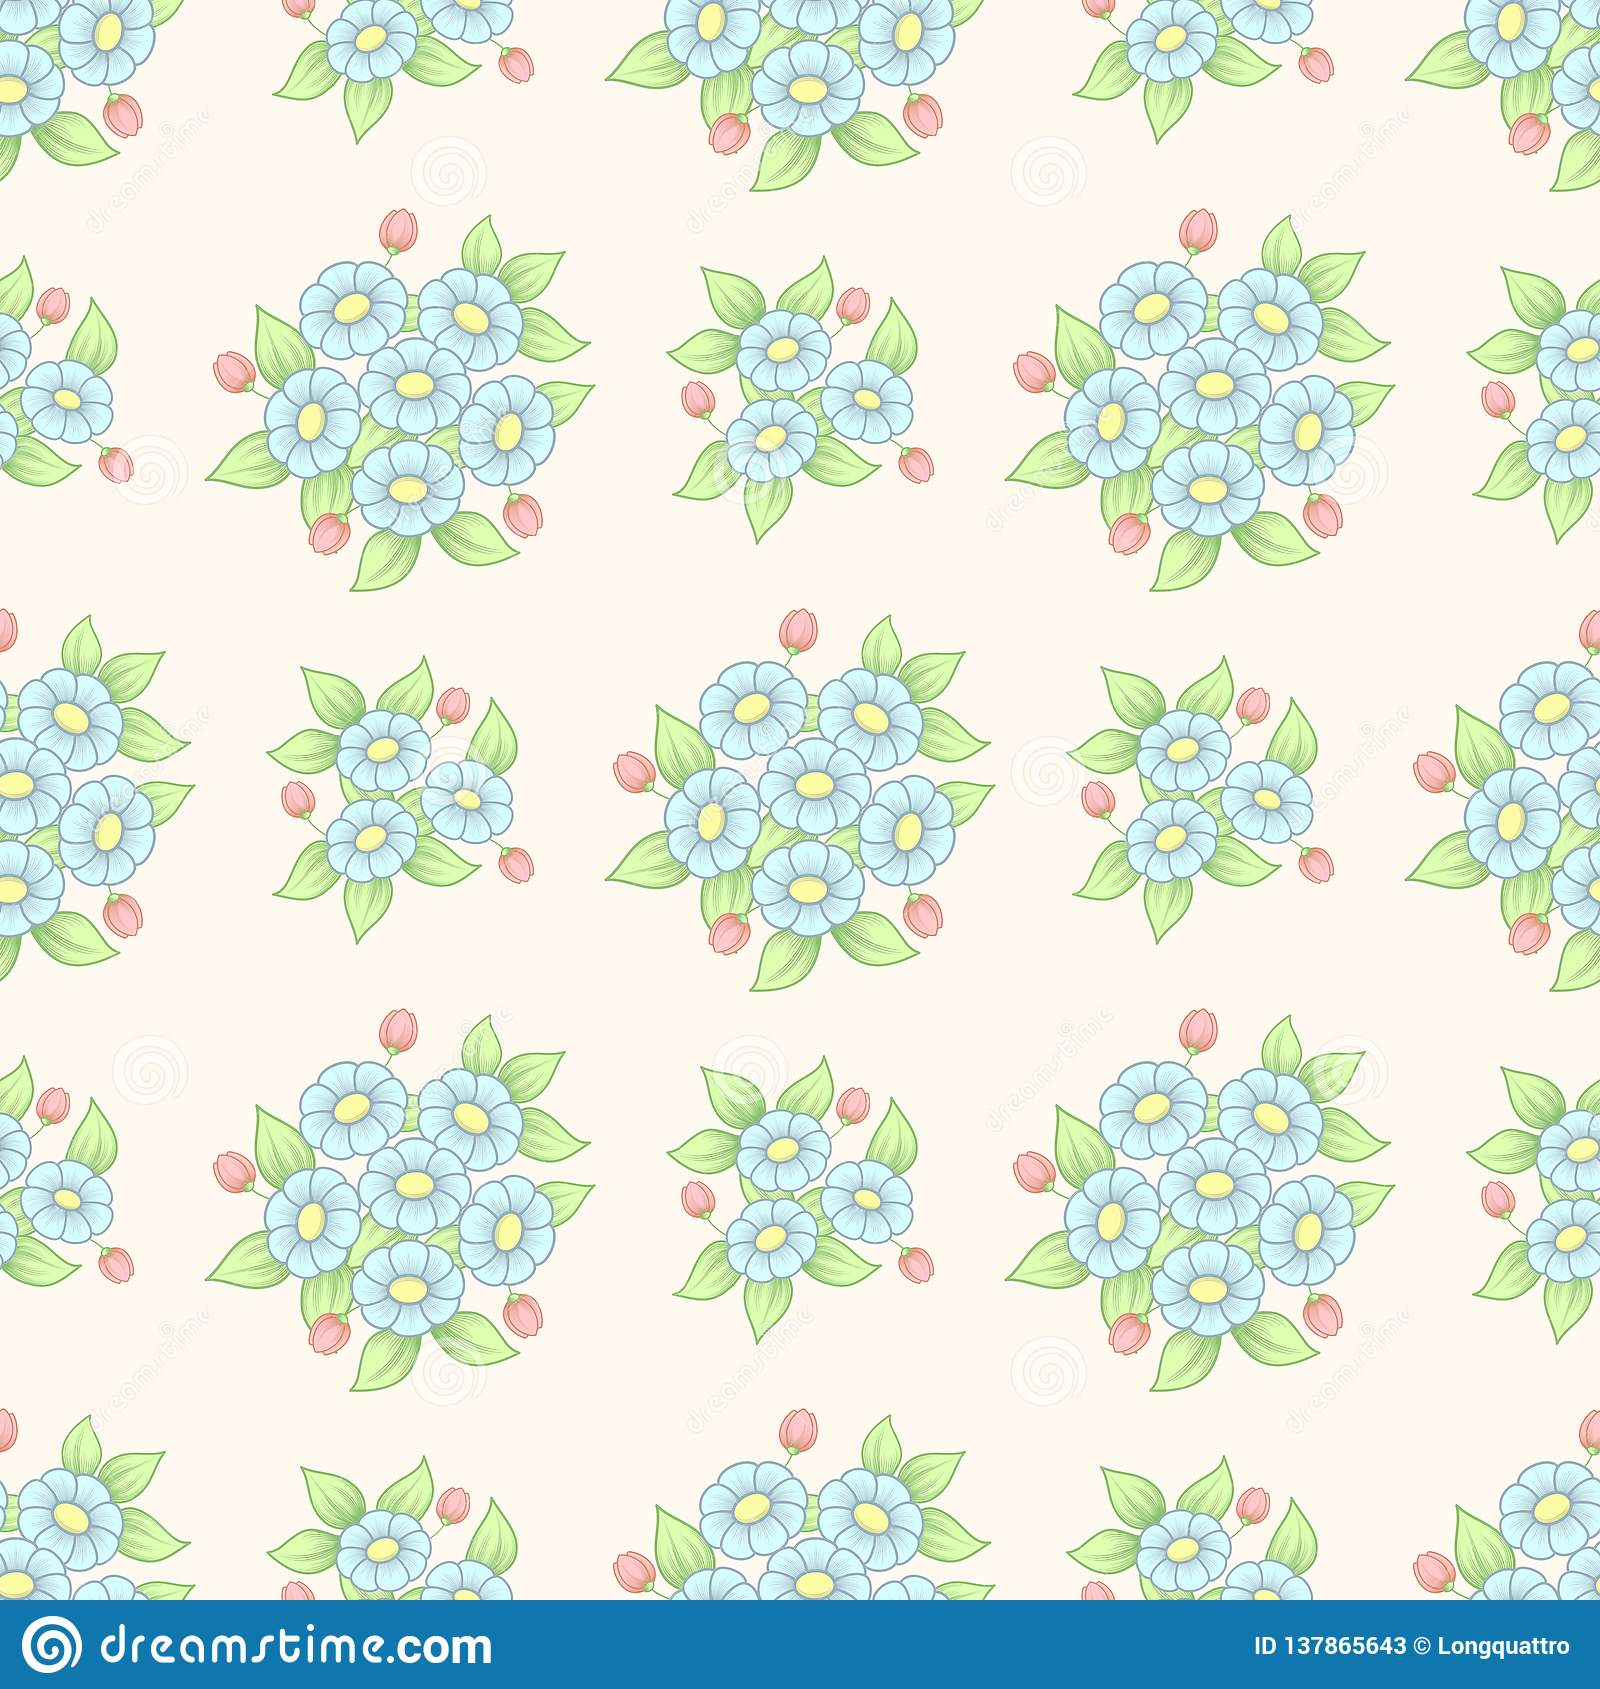 Seamless floral background with pastel color daisy